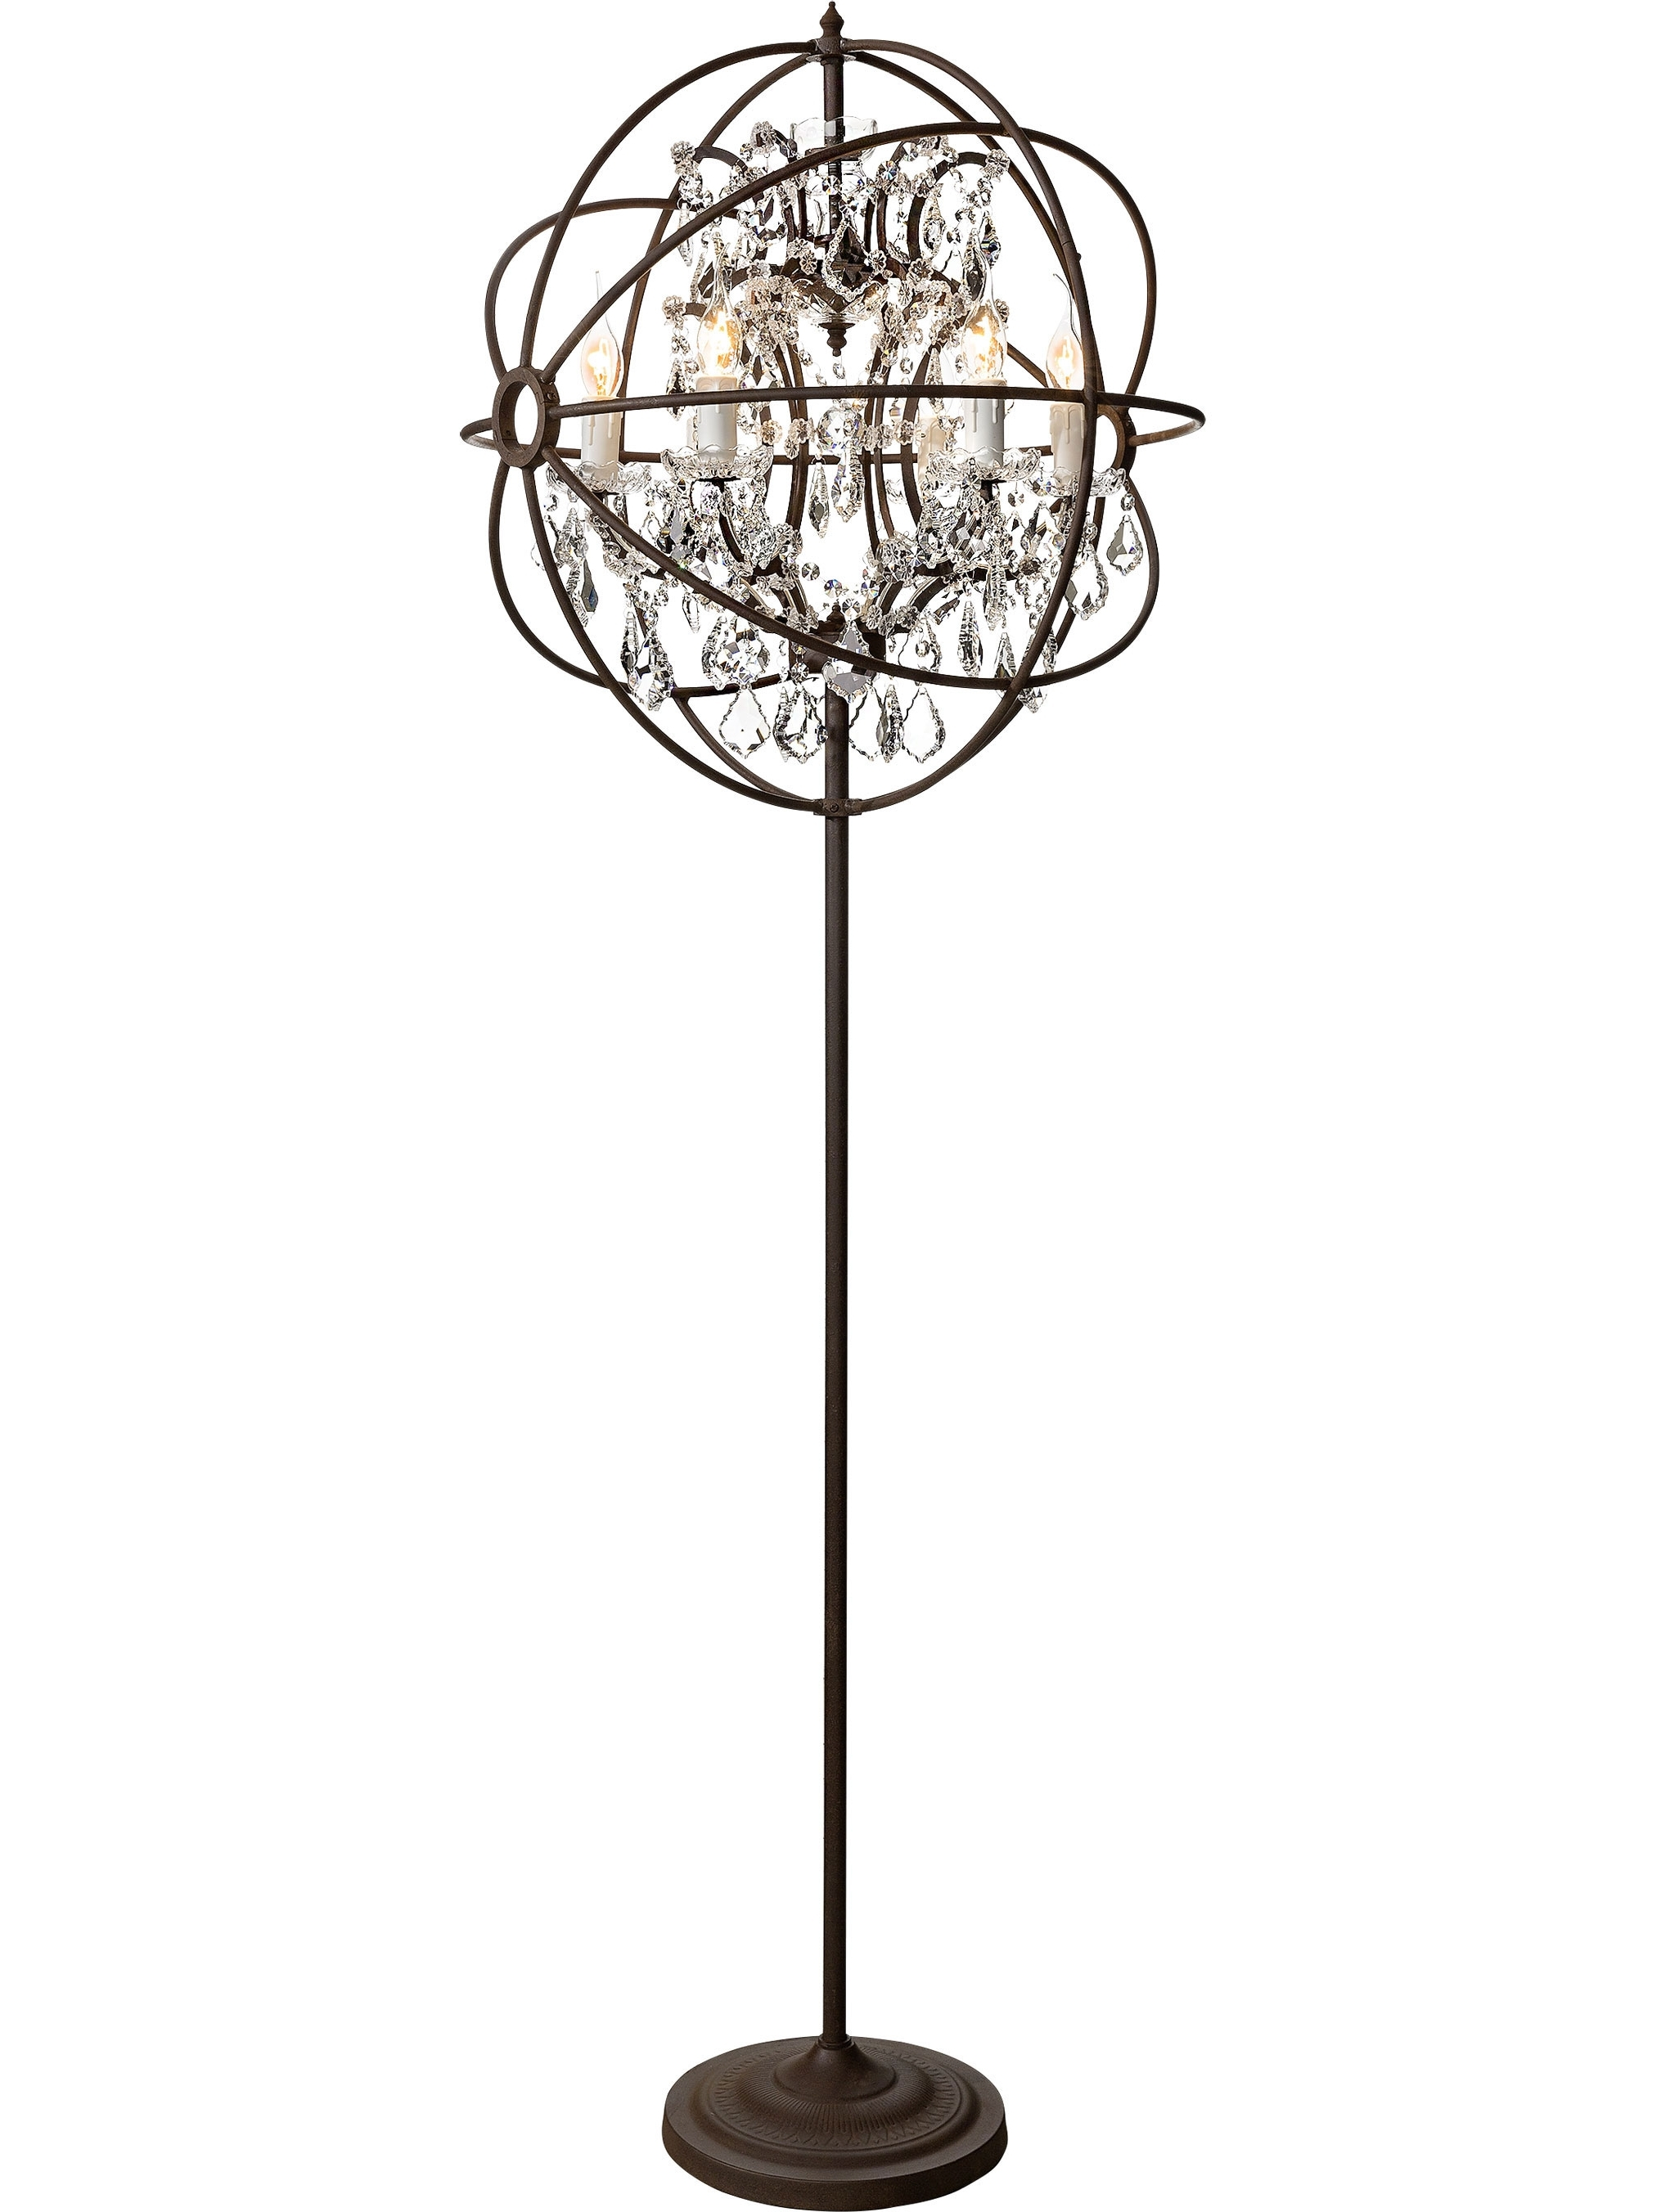 Well Known Tall Standing Chandelier Lamps Throughout Standing Chandelier Lamp Chandelieramp Shades Glass Non Clip On Tall (View 8 of 15)